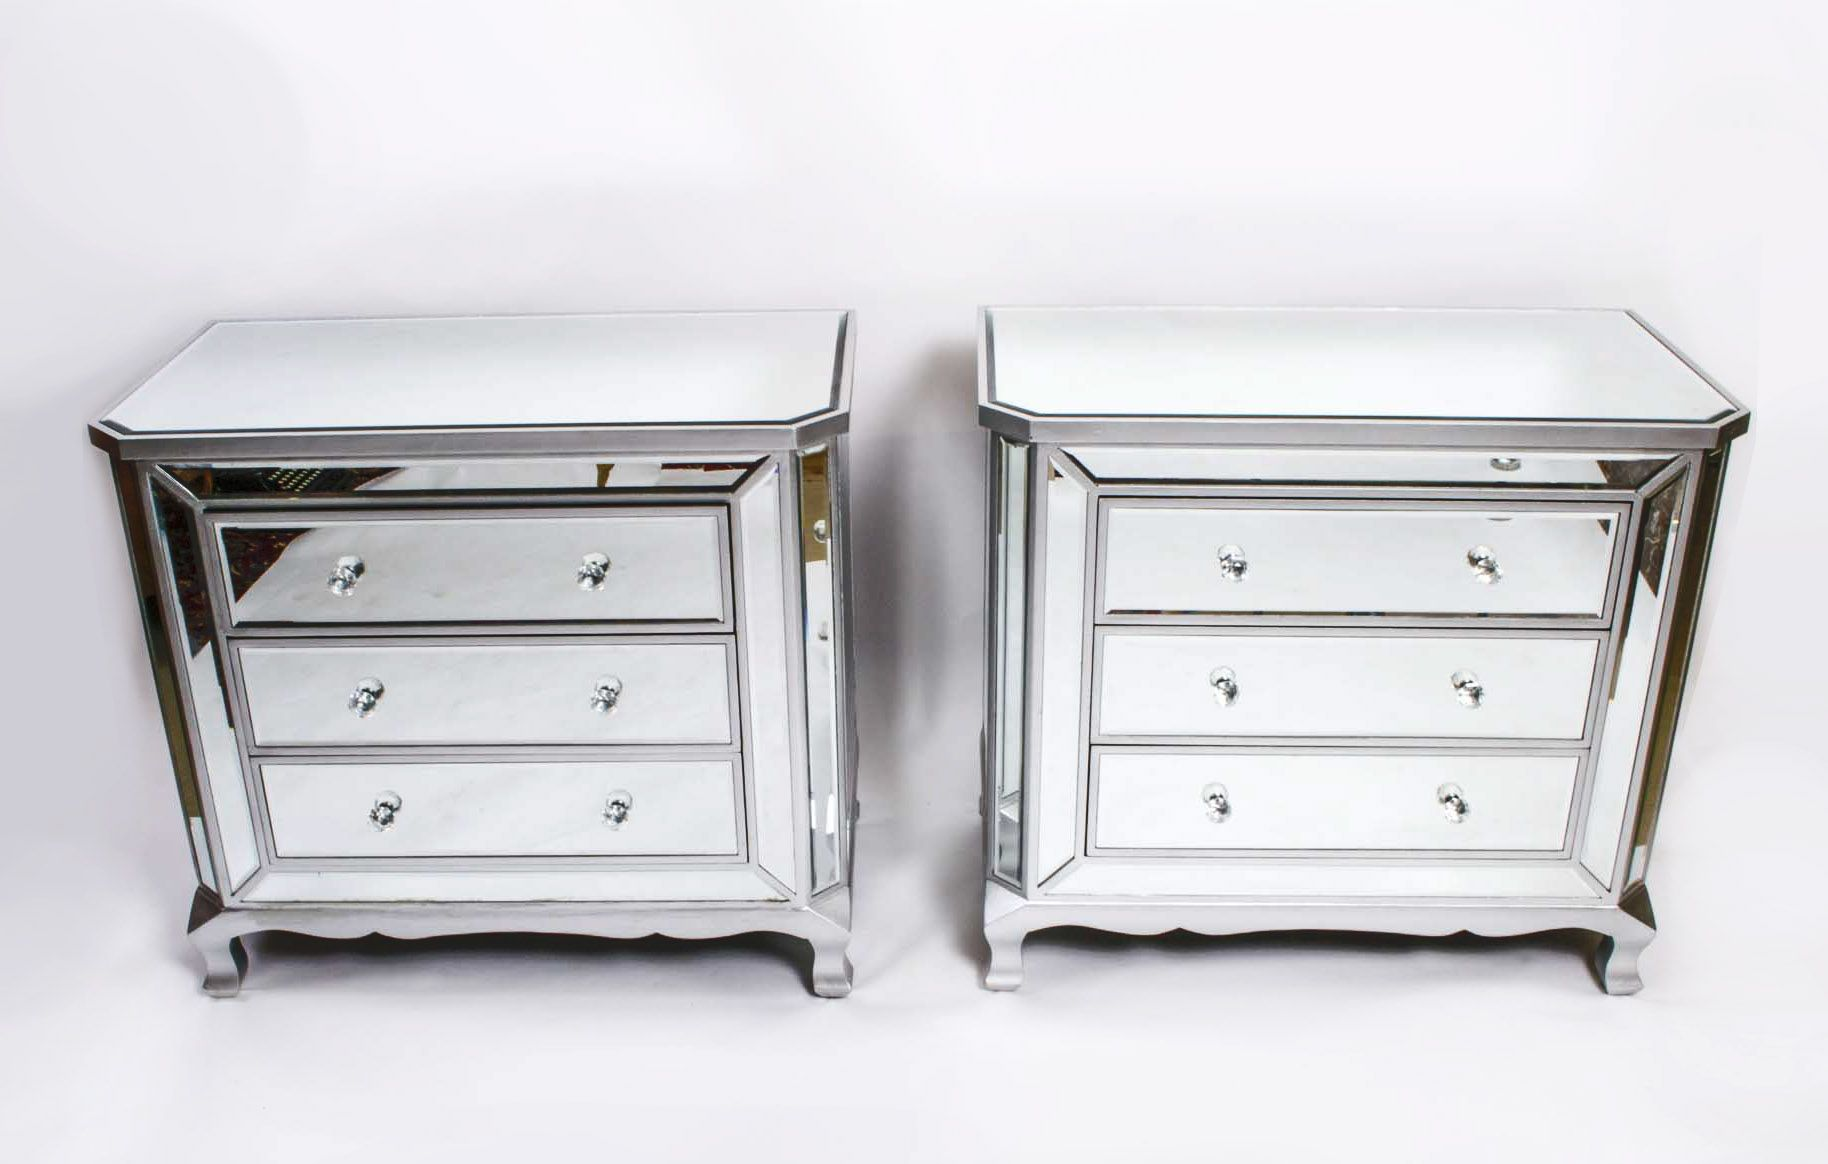 This Is A Fabulous Pair Of Art Deco Style Mirrored Chests Of Drawers With Silvered Show